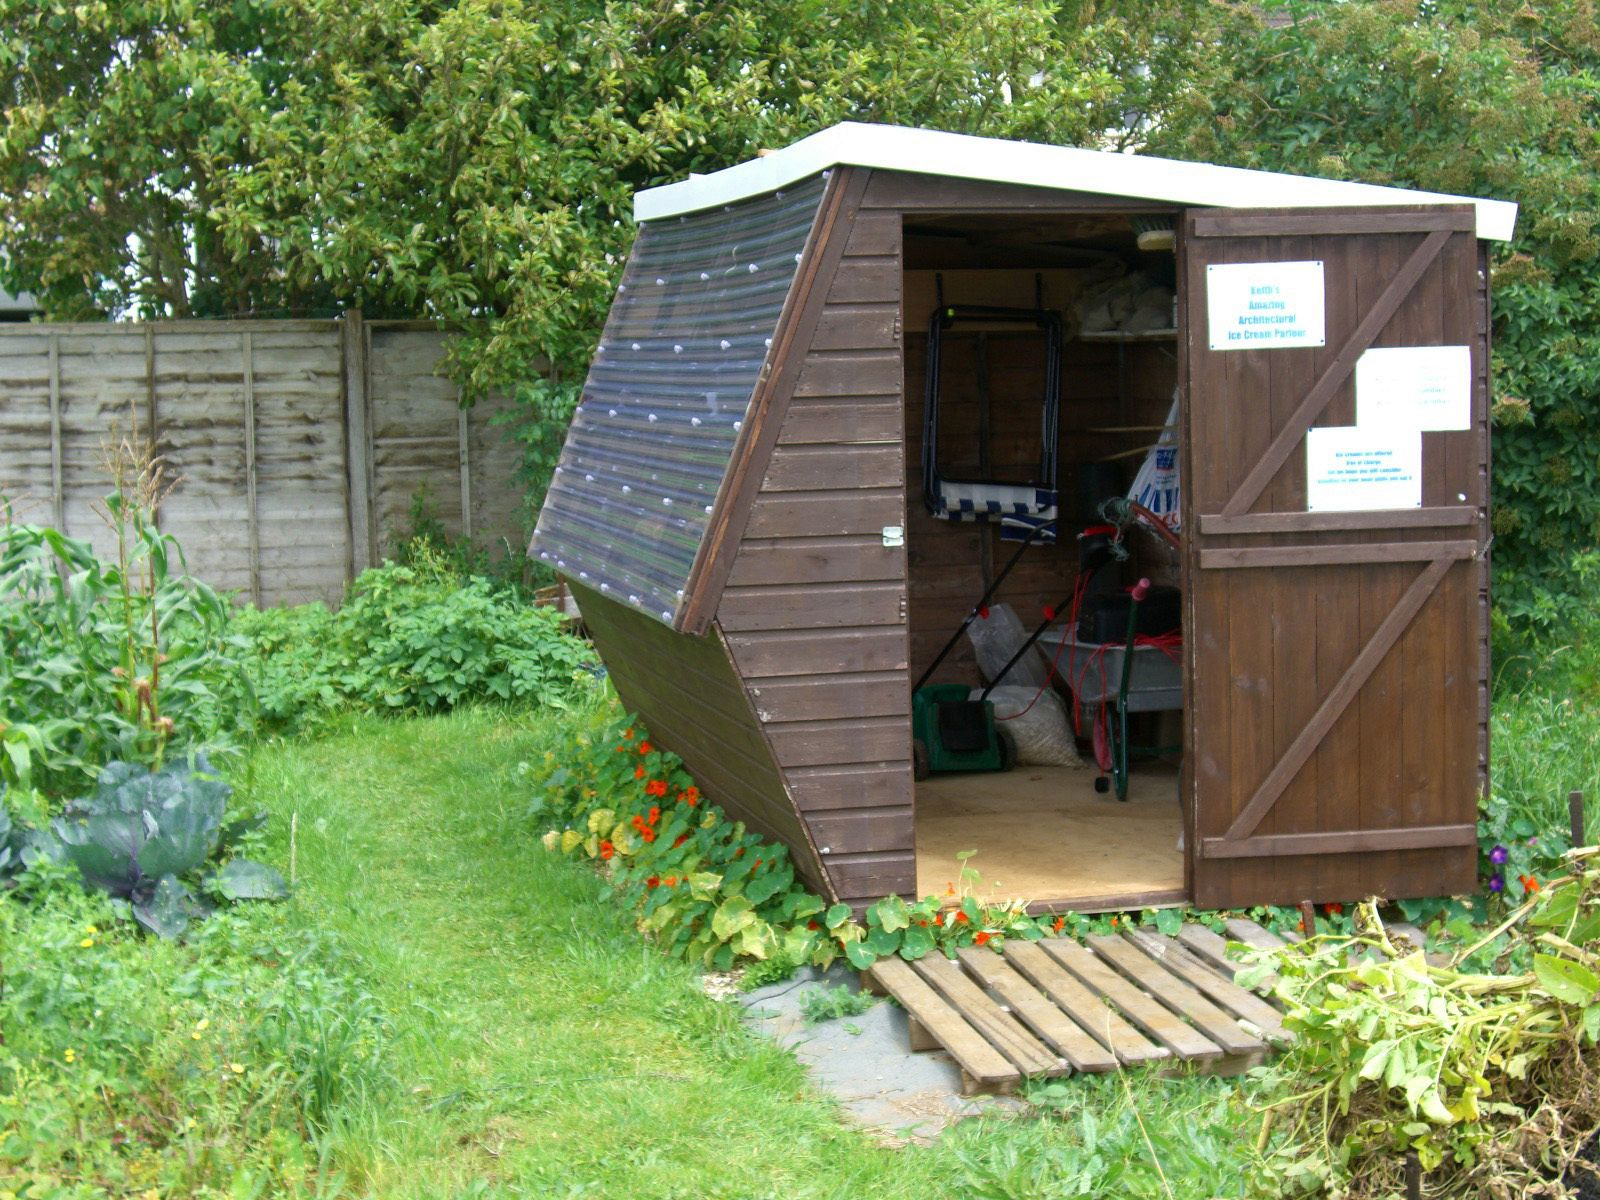 An allotment. Keith's shed.